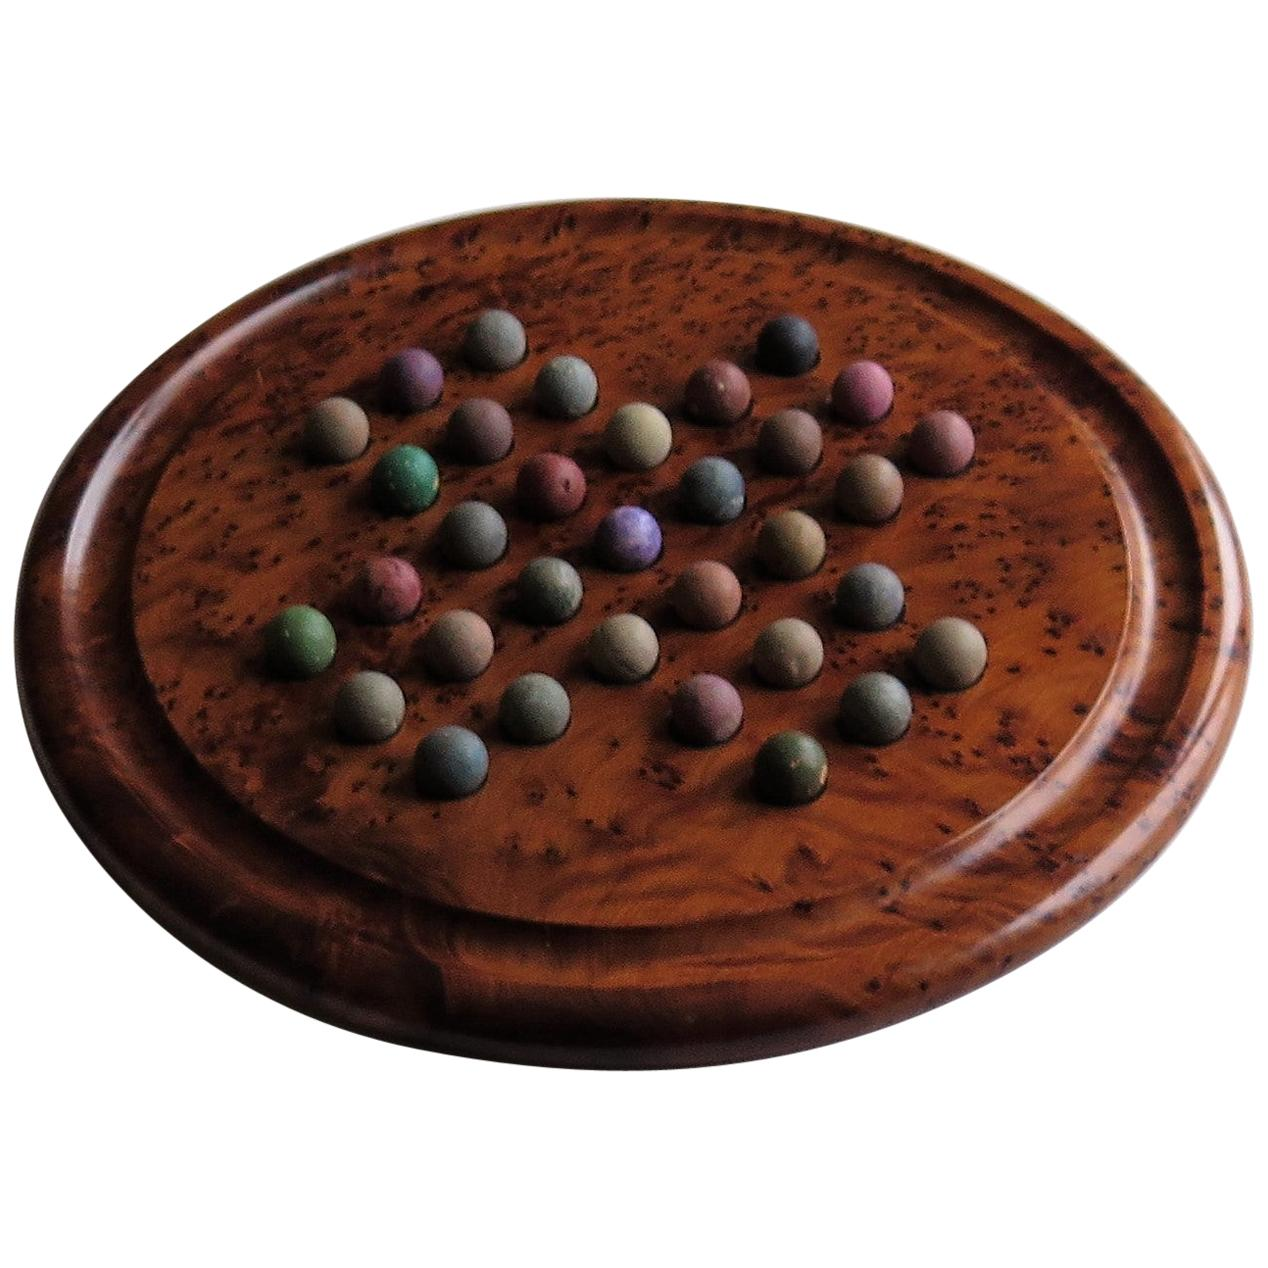 Large Marble Solitaire Board Game with 33 Early Handmade Clay Marbles